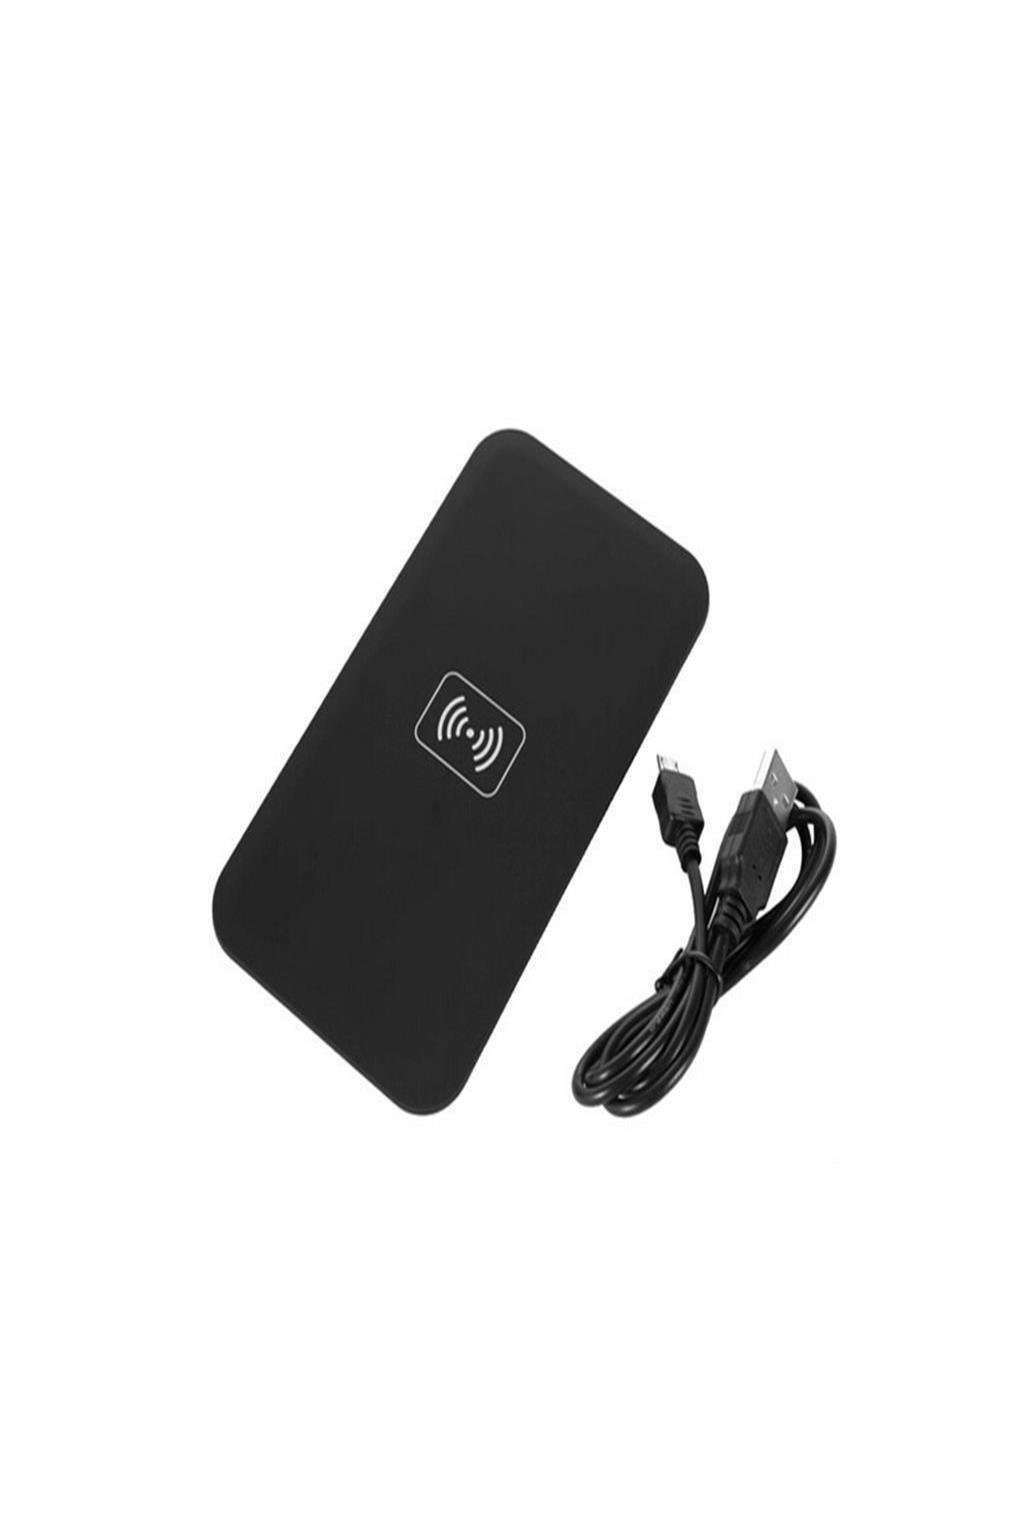 10PCS New Universal Qi Wireless Emitter Charger Charging Pad for Samsung Galaxy S6 S6 S7 Egde